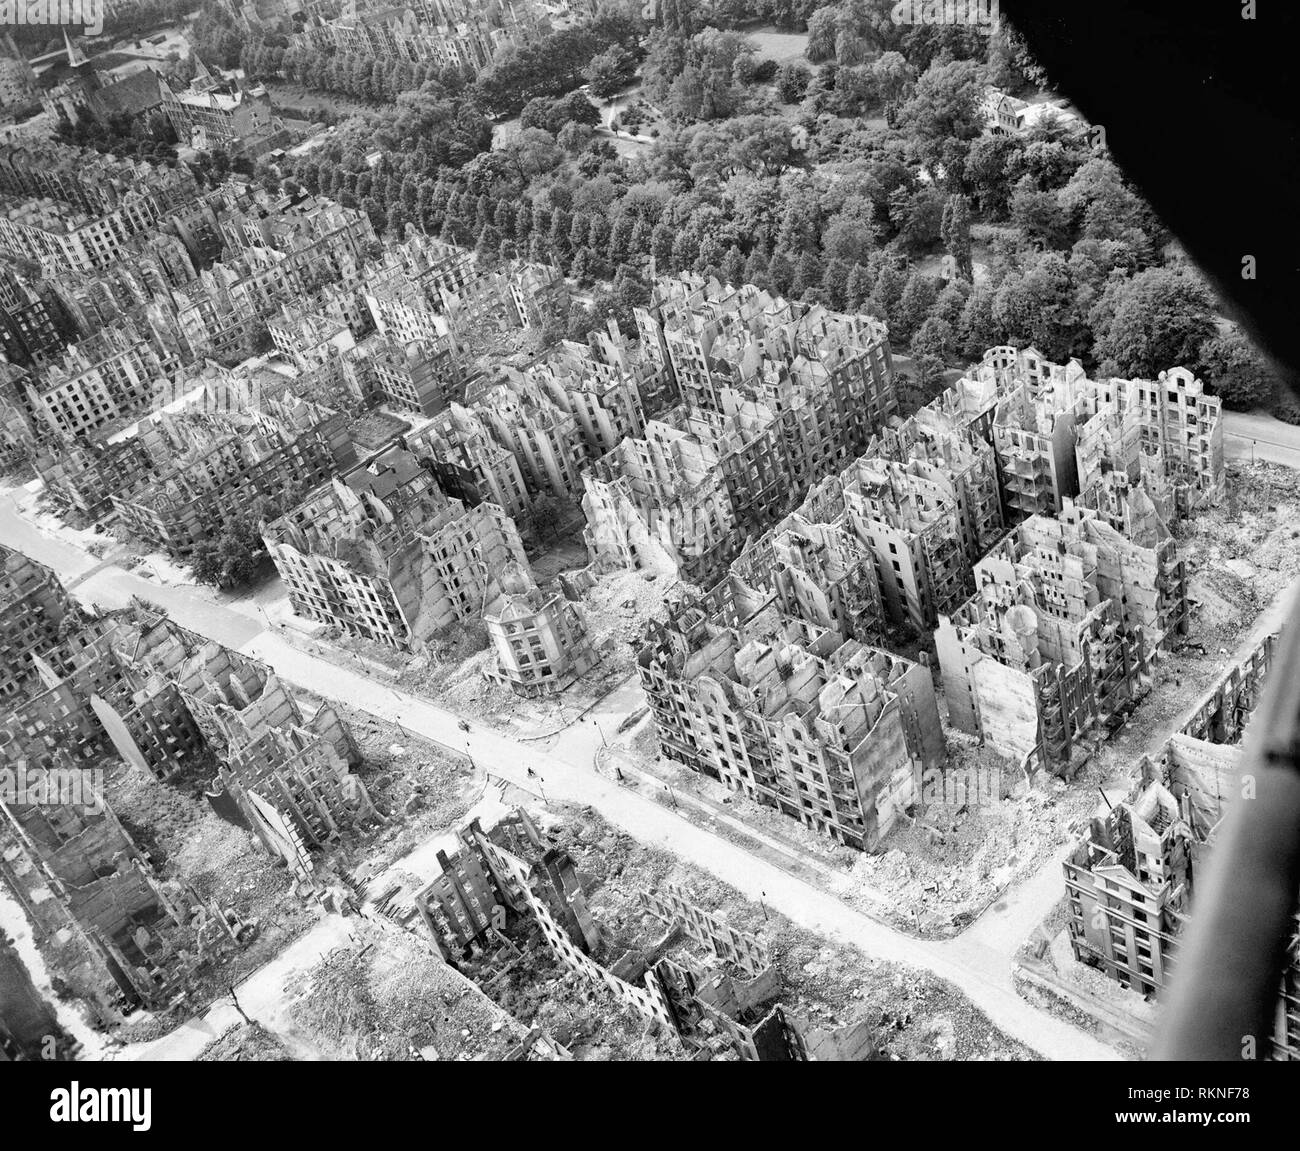 Oblique aerial view of ruined residential and commercial buildings south of the Eilbektal Park (seen at upper right) in the Eilbek district of Hamburg, Germany. These were among the 16,000 multi-storeyed apartment buildings destroyed by the firestorm which developed during the raid by Bomber Command on the night of 27/28 July 1943 (Operation GOMORRAH). The road running diagonally from upper left to lower right is Eilbeker Weg, crossed by Rückertstraße. - Stock Image